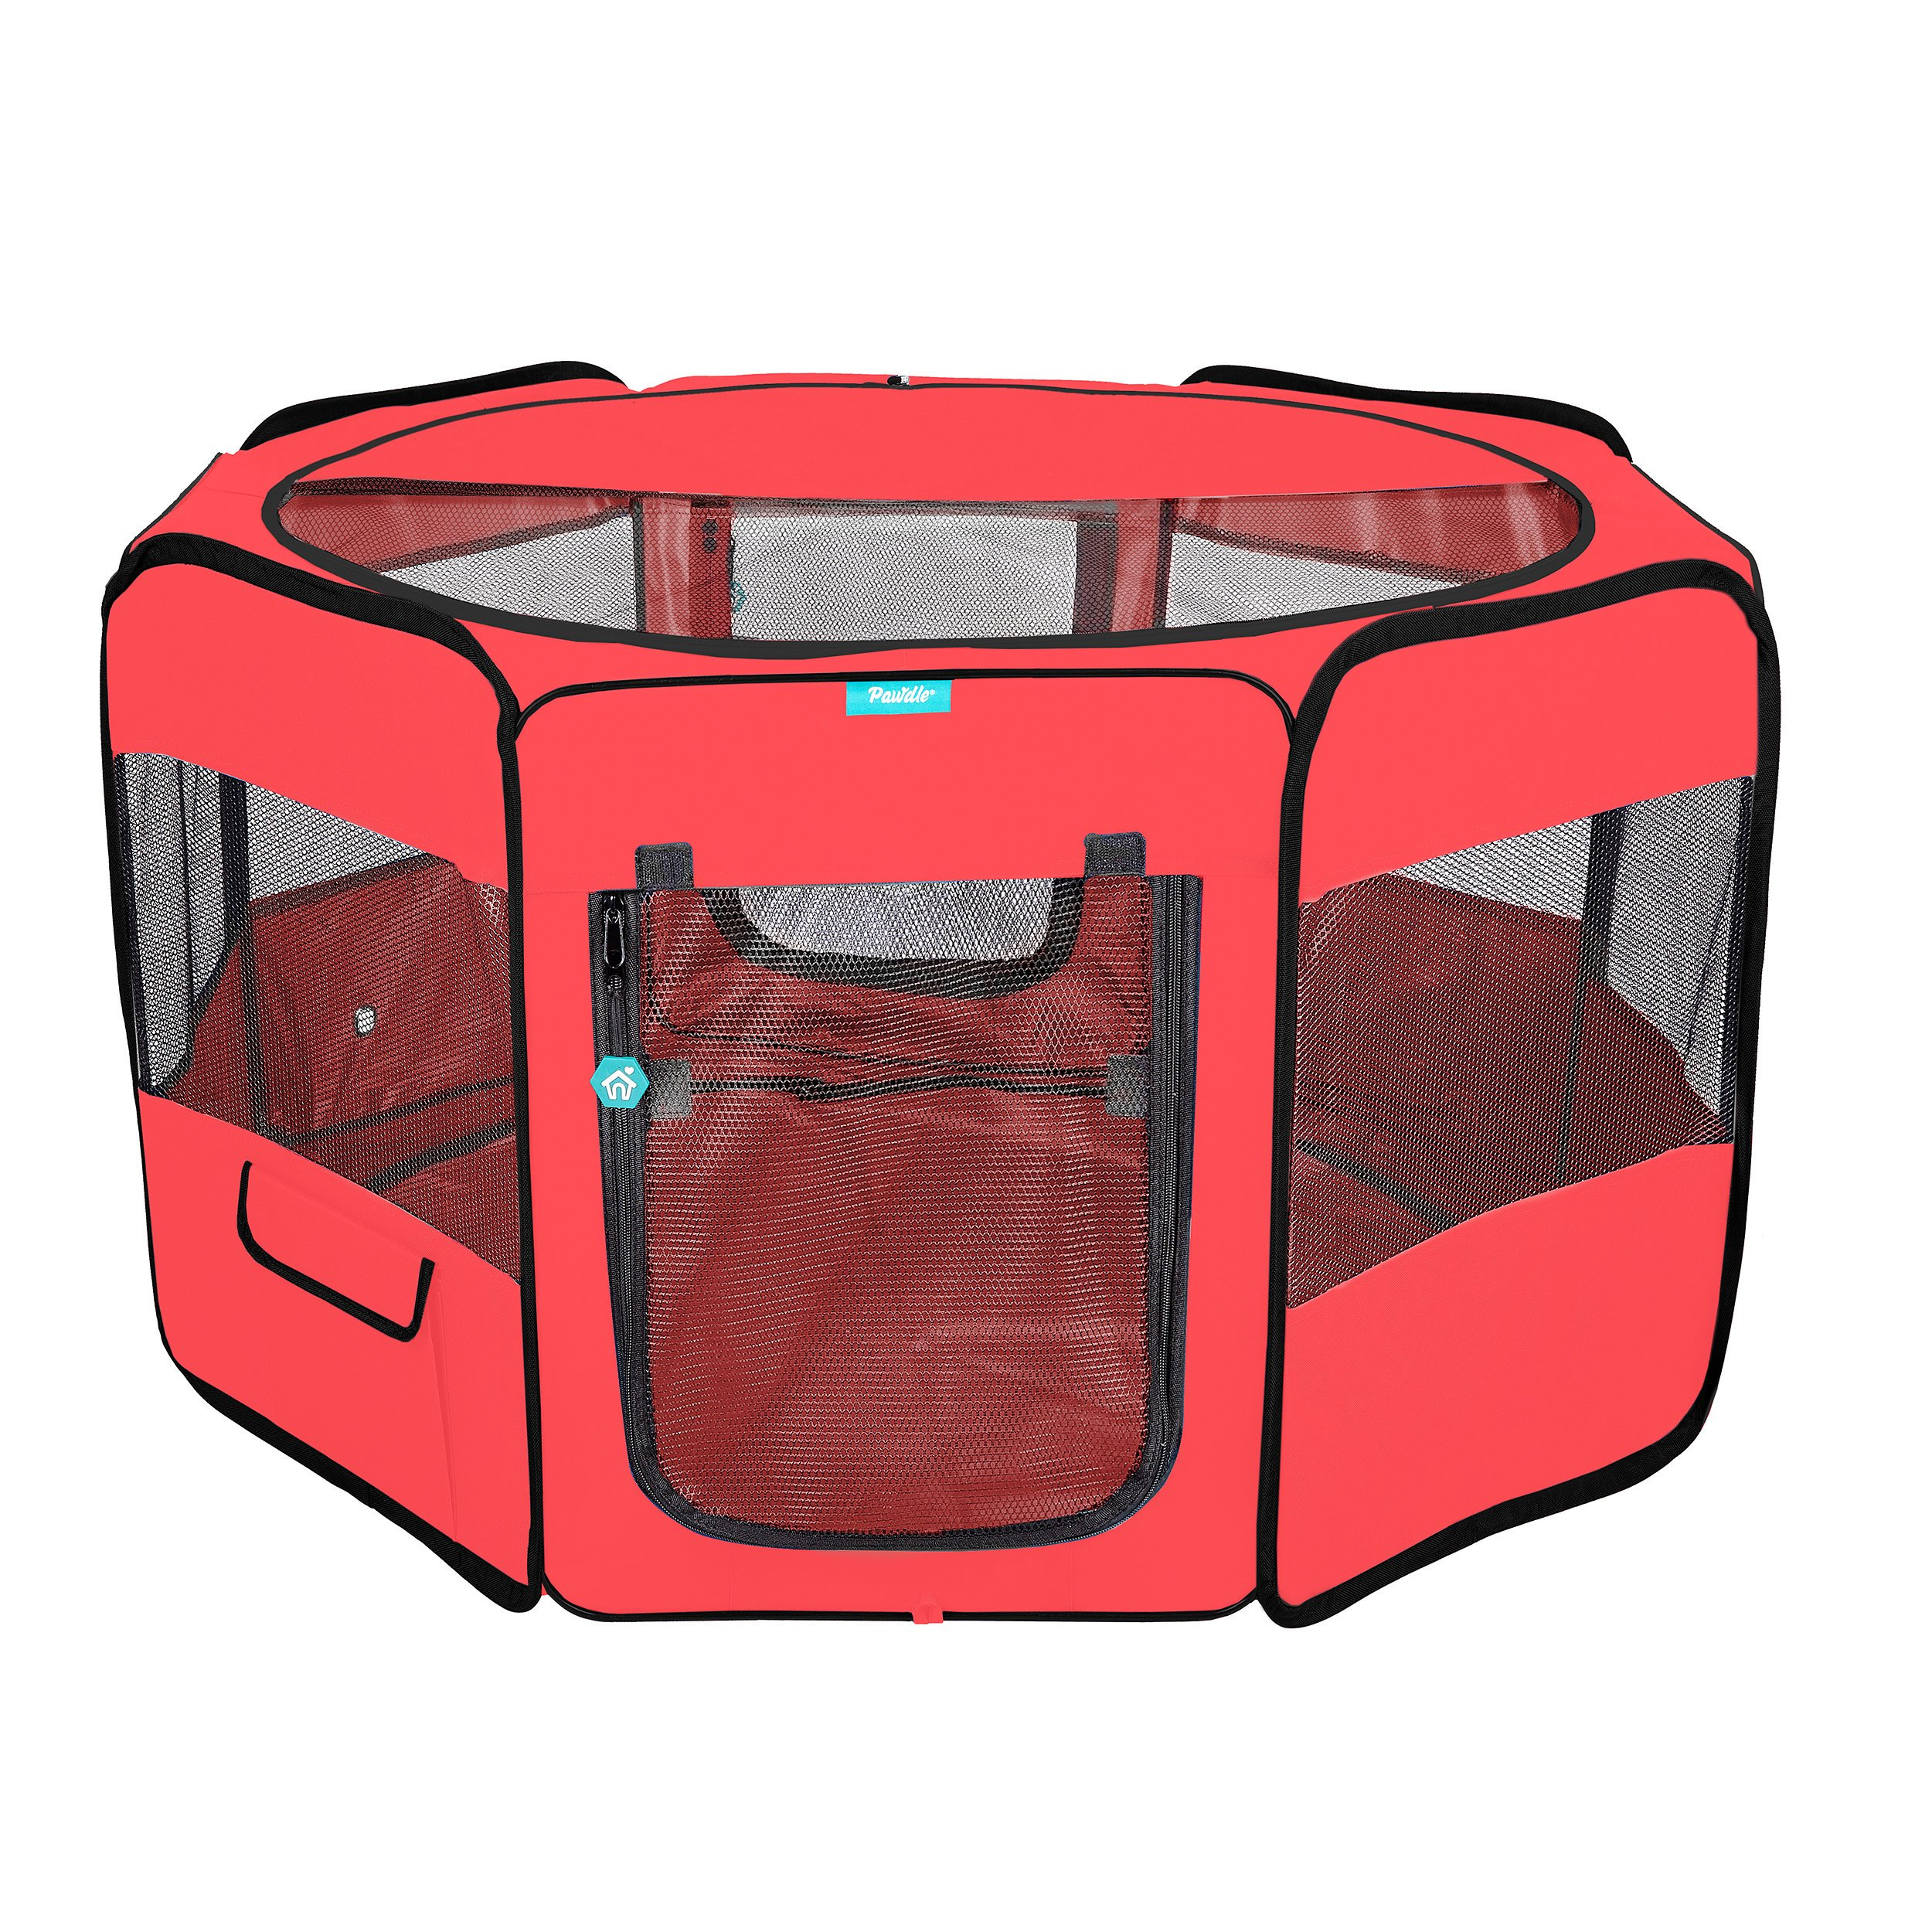 Deluxe Premium Pet Dog Playpen Portable Soft Dog Exercise Pen Kennel with Carry Bag for Dogs, Cats, Kittens, and All Pets (Large, Red) by Pawdle